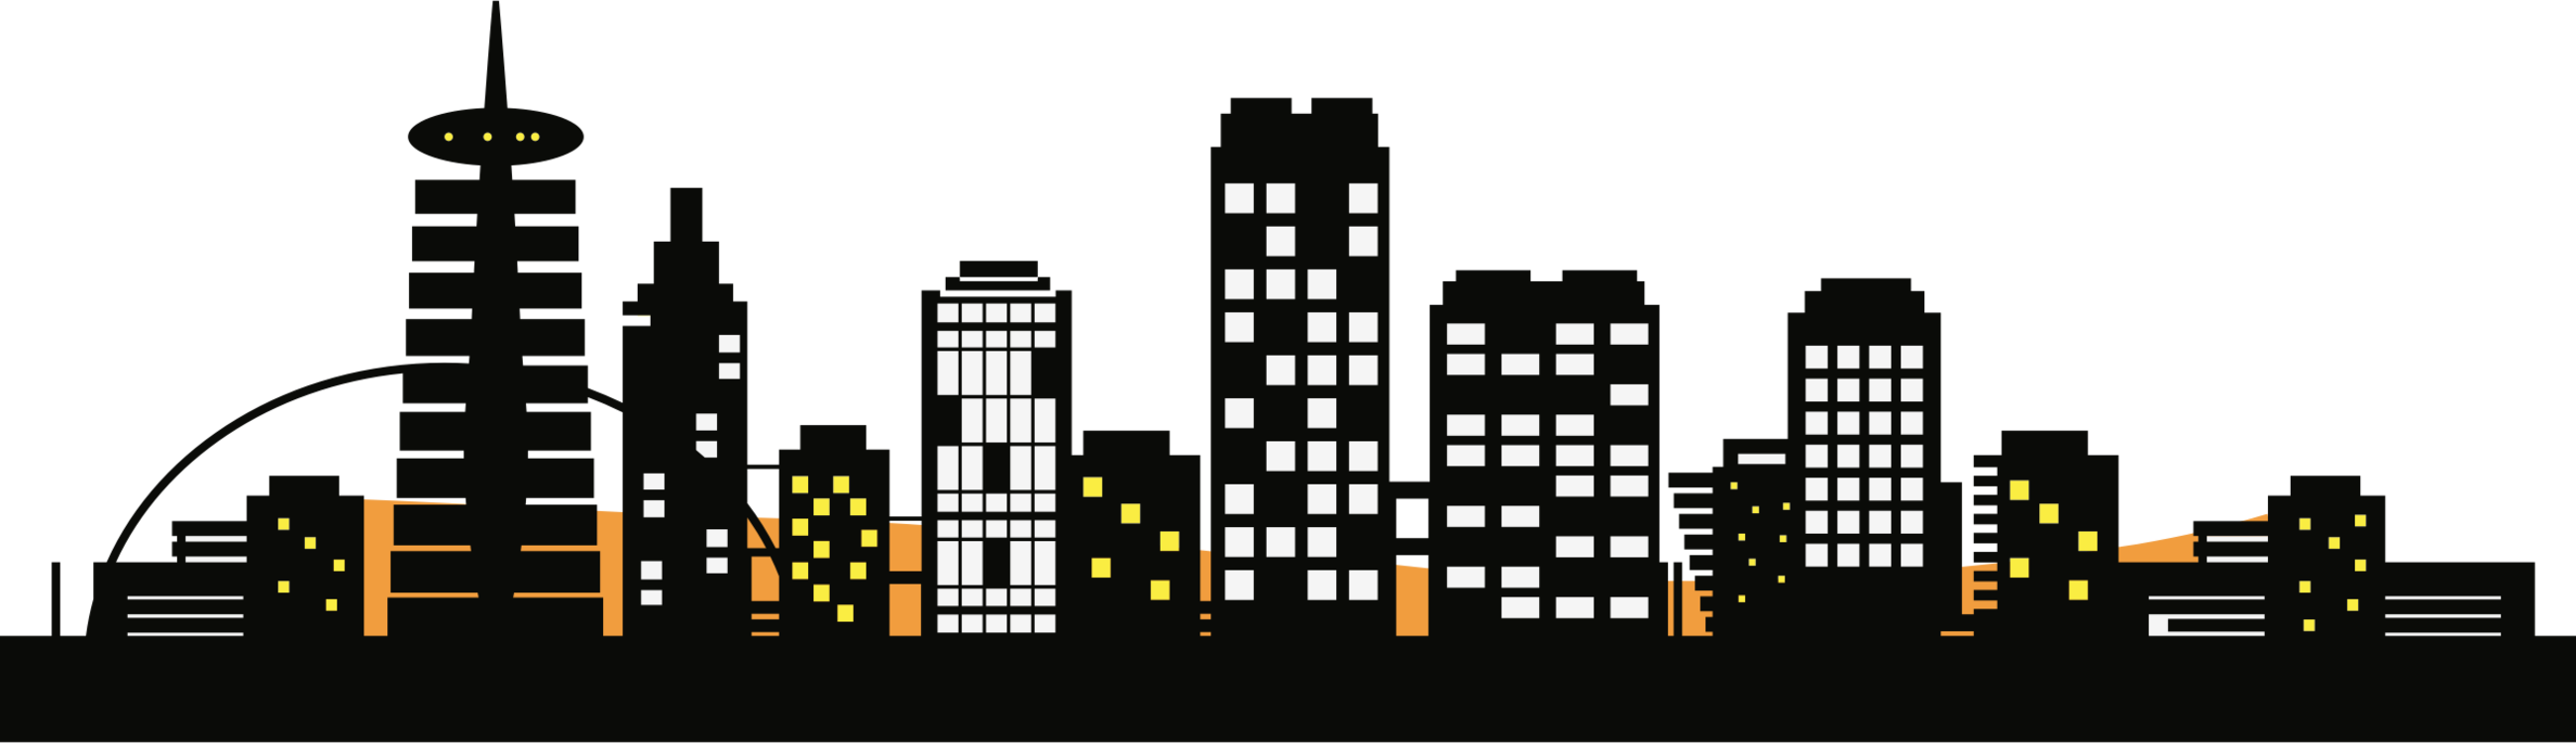 City,Metropolis,Tower Block